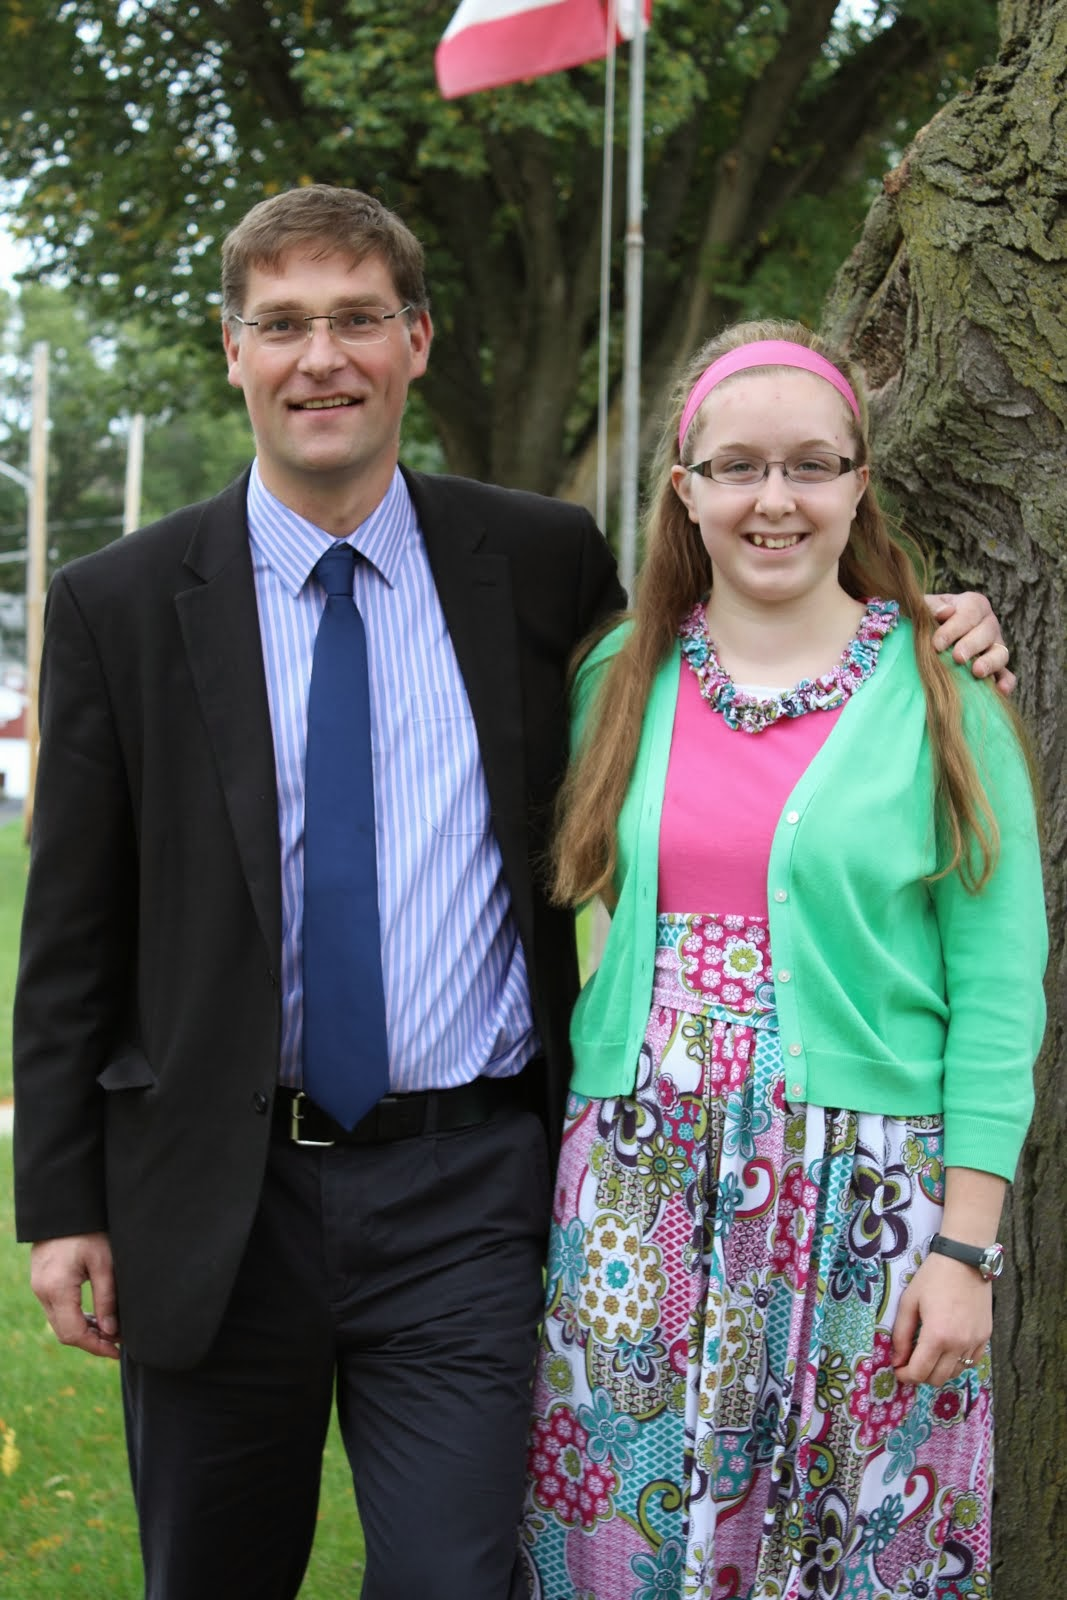 Blogger: Allison Ockenfels with the founder of Mary's Meals from Scotland, Magnus MacFarlane-Barrow